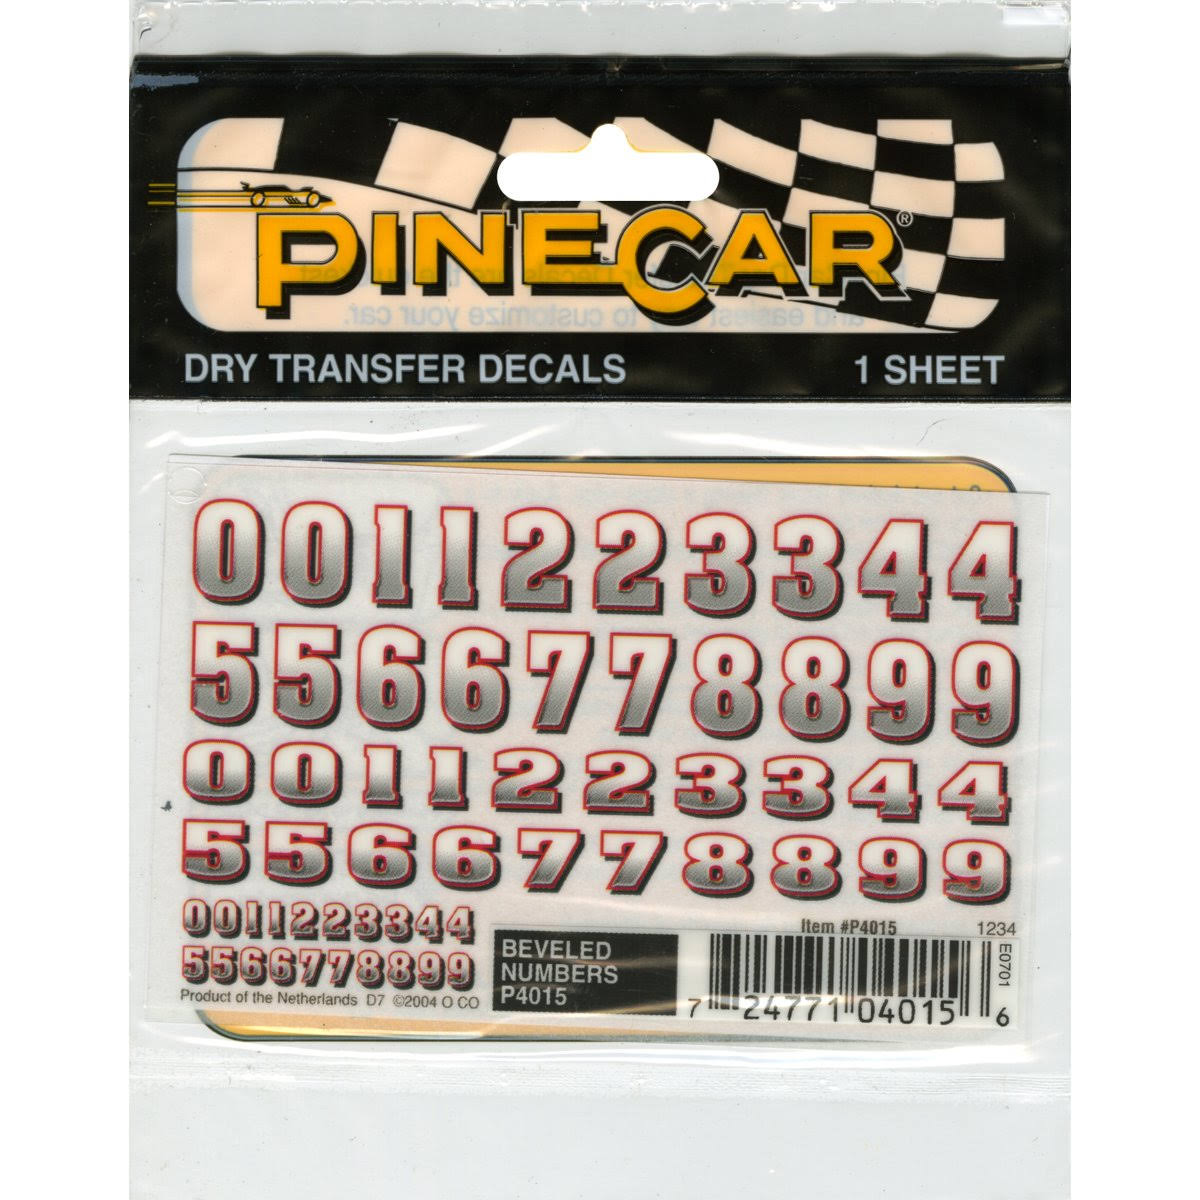 Pine Car Dry Transfer Beveled Numbers